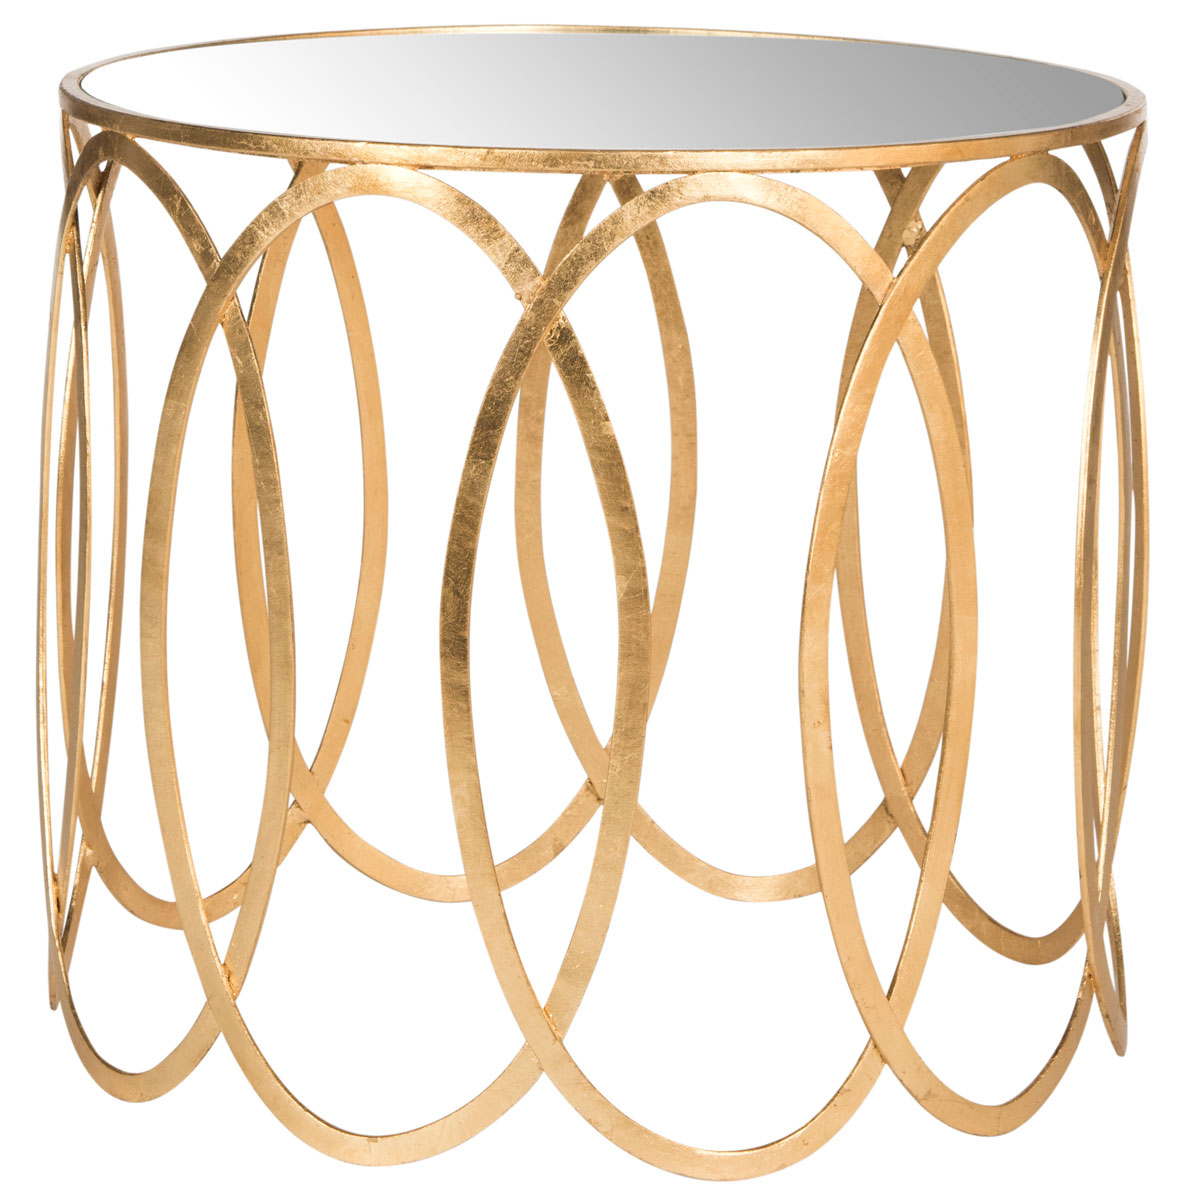 gold accent table end tables safavieh front product details mango wood console kids writing desk coffee with power garden stool side coca cola tiffany lamp shade wedding covers